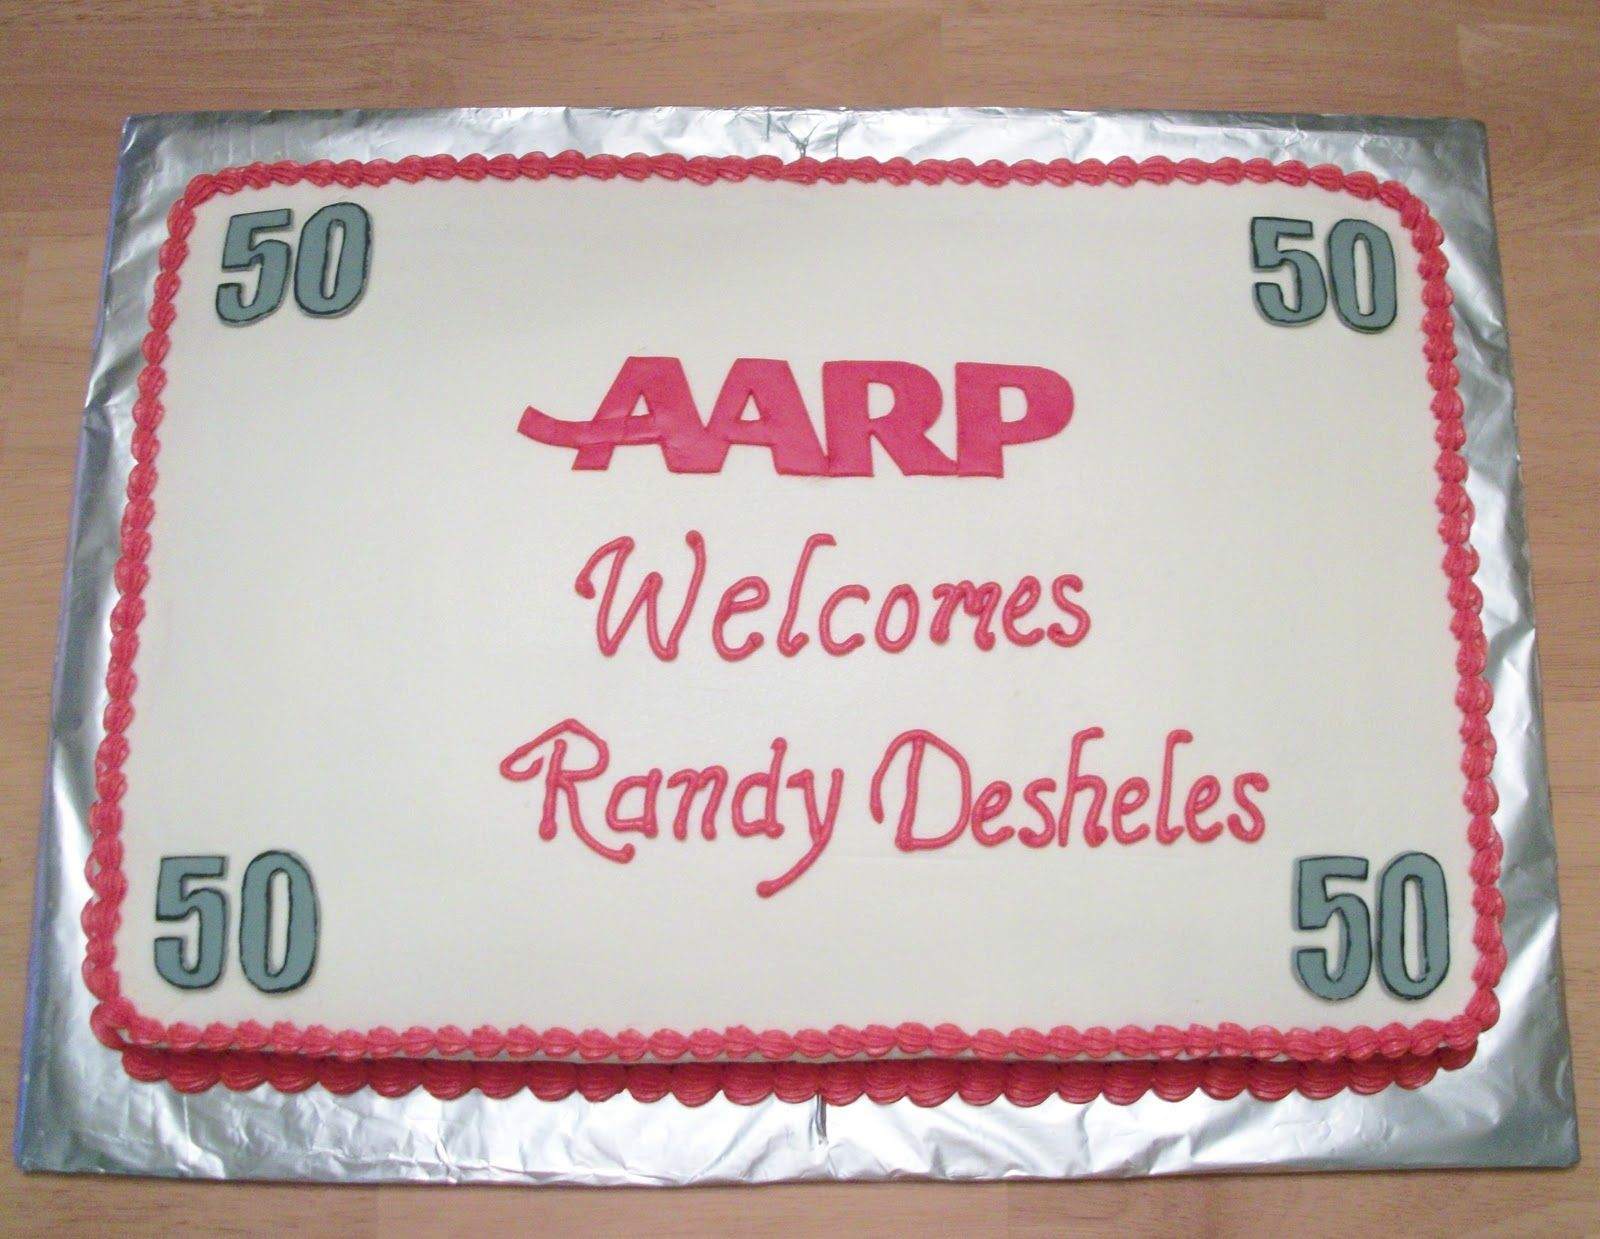 This Is A 50th Birthday Cake That I Was Asked To Do As A Joke With